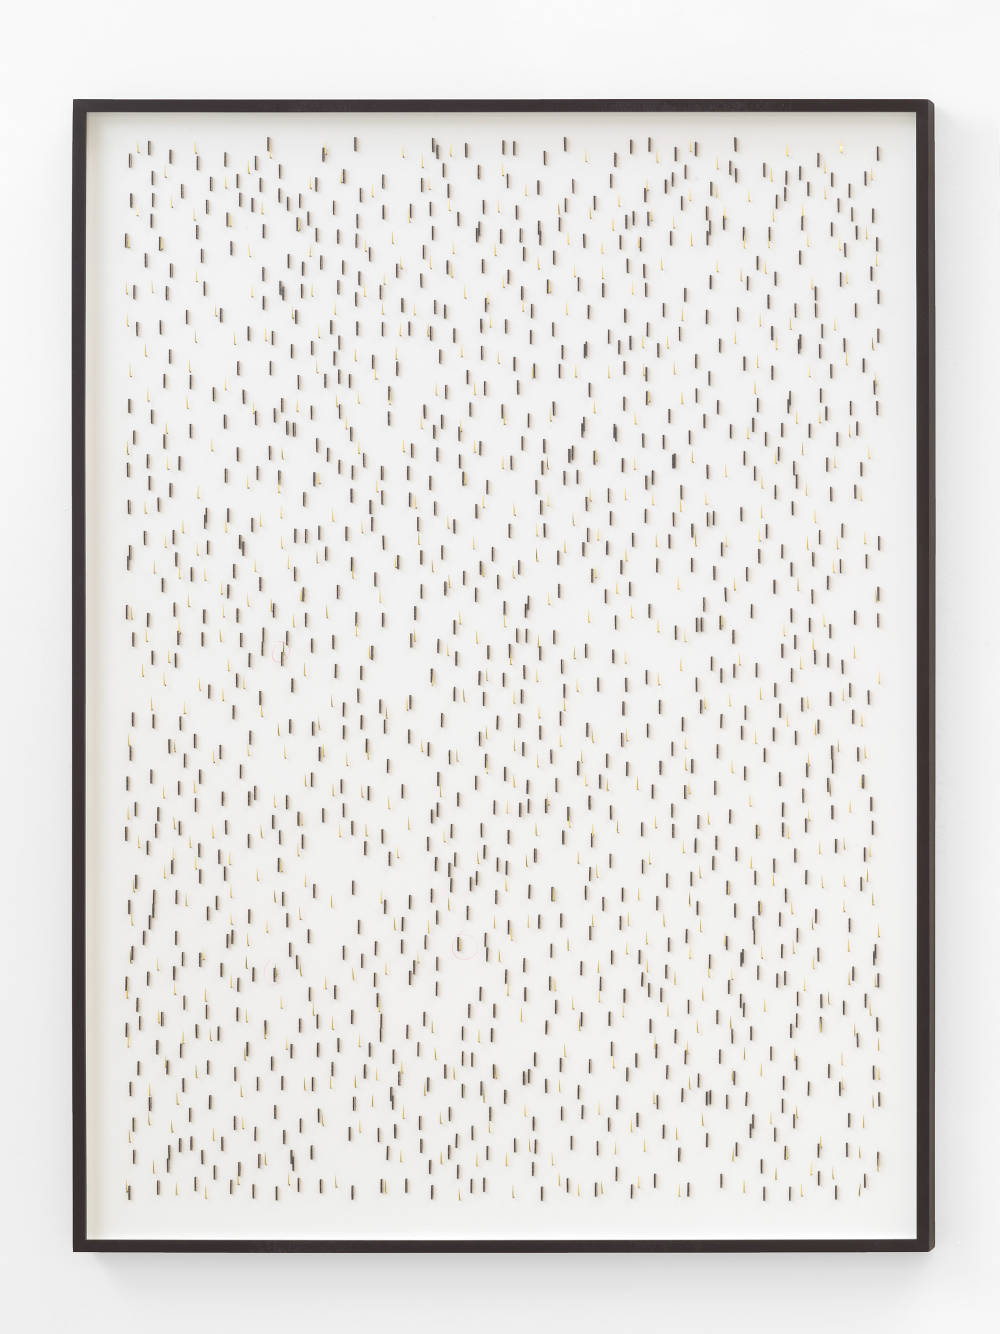 Alicja Kwade, Rain (10 minutes/ 100 cm), 2019. Clock hands and folding ruler on paper 52 1/4 x 38 7/8 x 1 7/8 inches (132.7 x 98.7 x 4.8 cm) framed. Unique